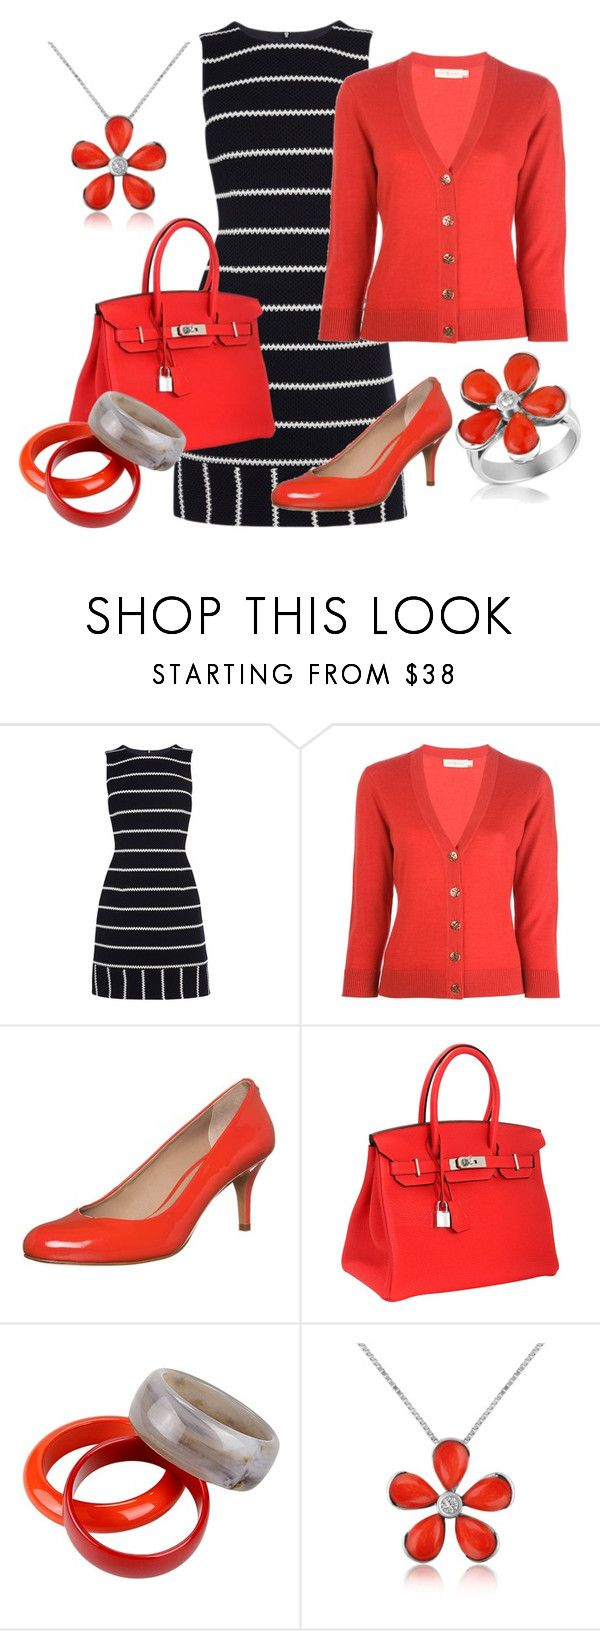 """Red-Pops!"" by theapatricia ❤ liked on Polyvore featuring Karen Millen, Tory Burch, Cosmoparis, Hermès, 8 and Del Gatto"